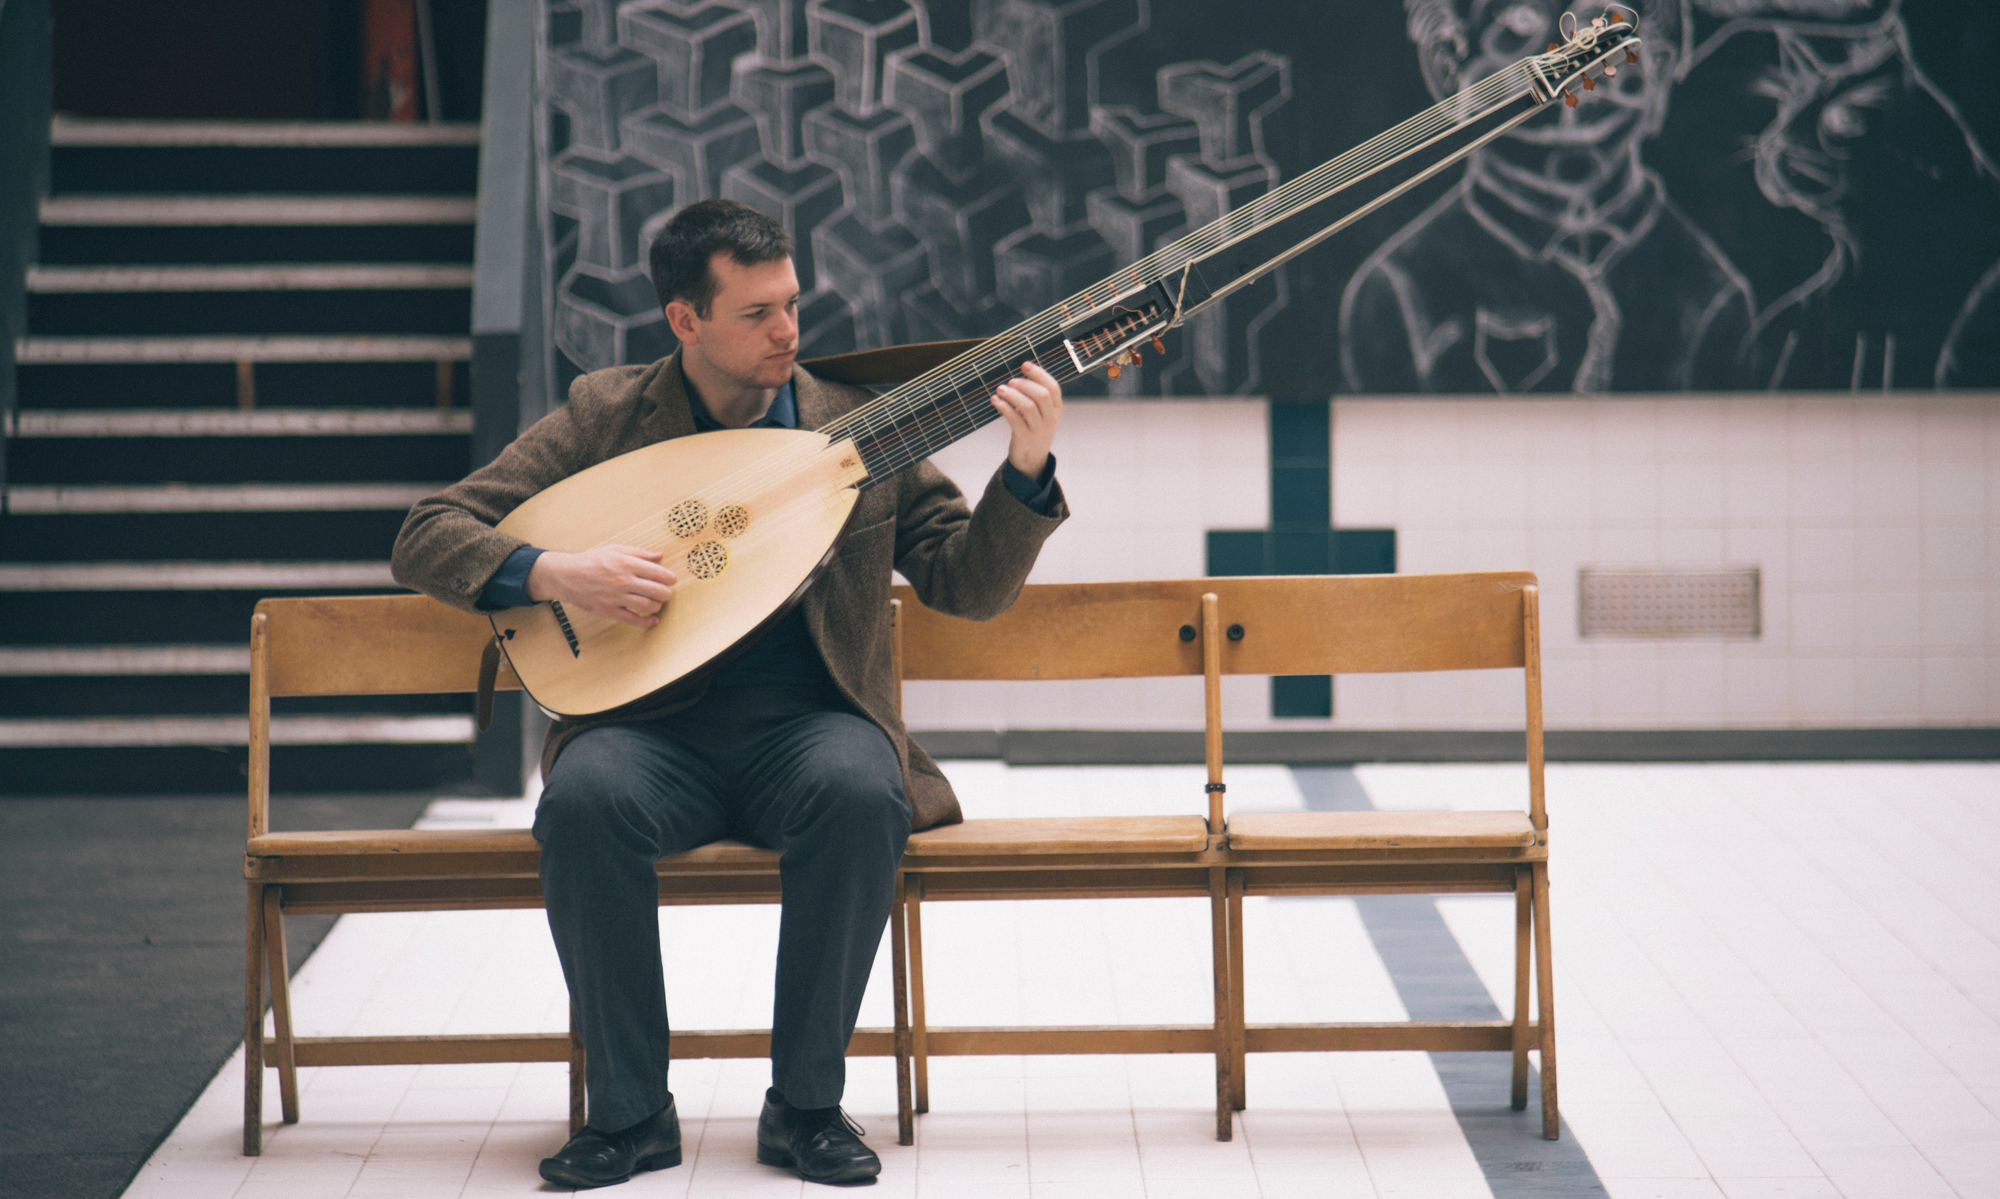 KCMF Image AlexMcCartney Theorbo 1 copy.png